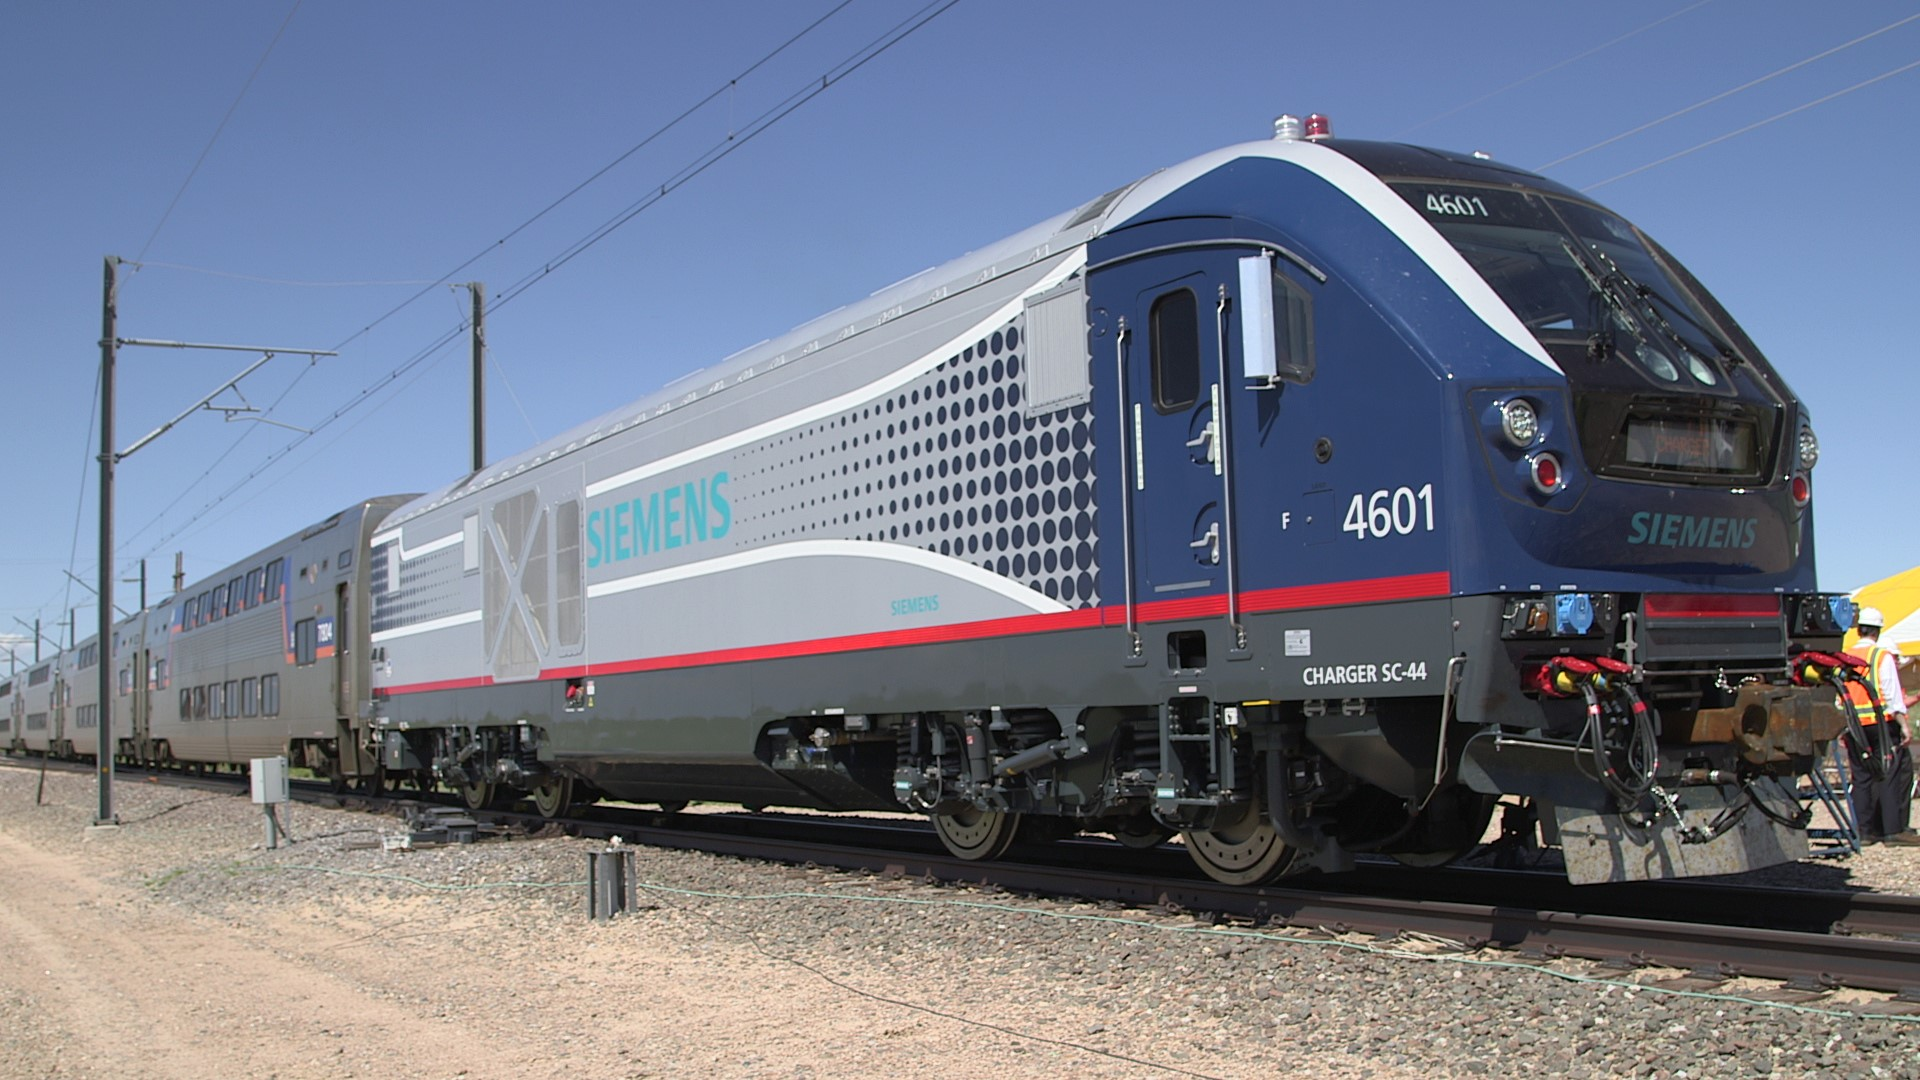 Charger locomotive